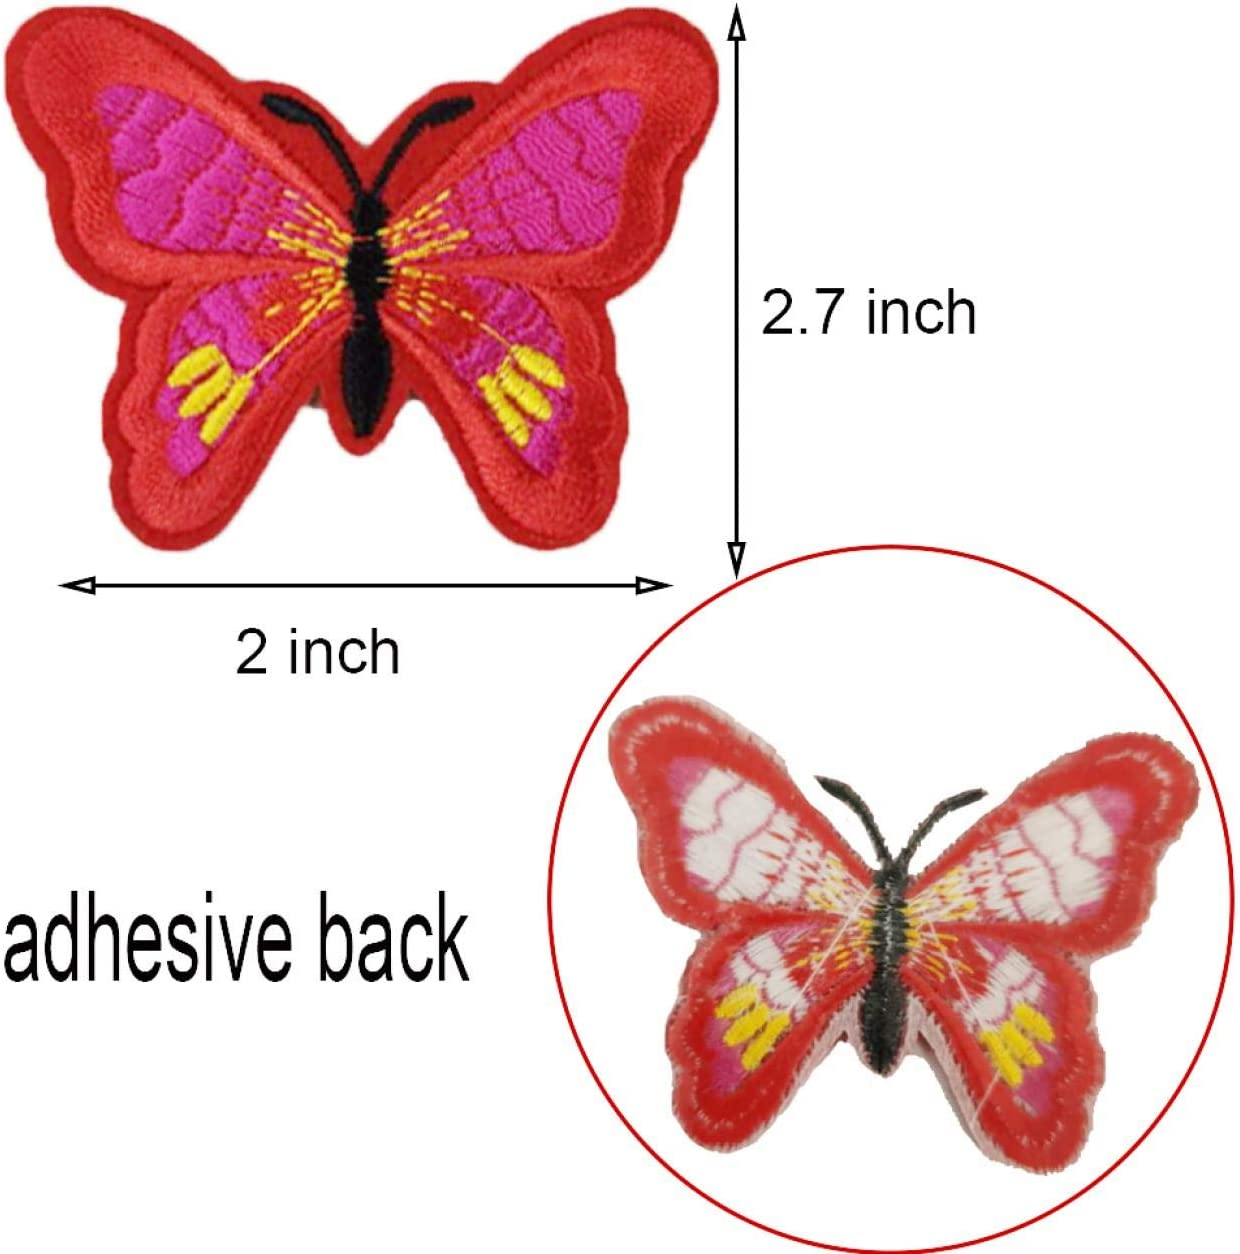 Artilife 20 Pcs Butterfly Patches Embroidered Iron On Patches Stickers for Jeans Jackets Repair Cloth Crafts for T Shirts Backpack Bags Clothes